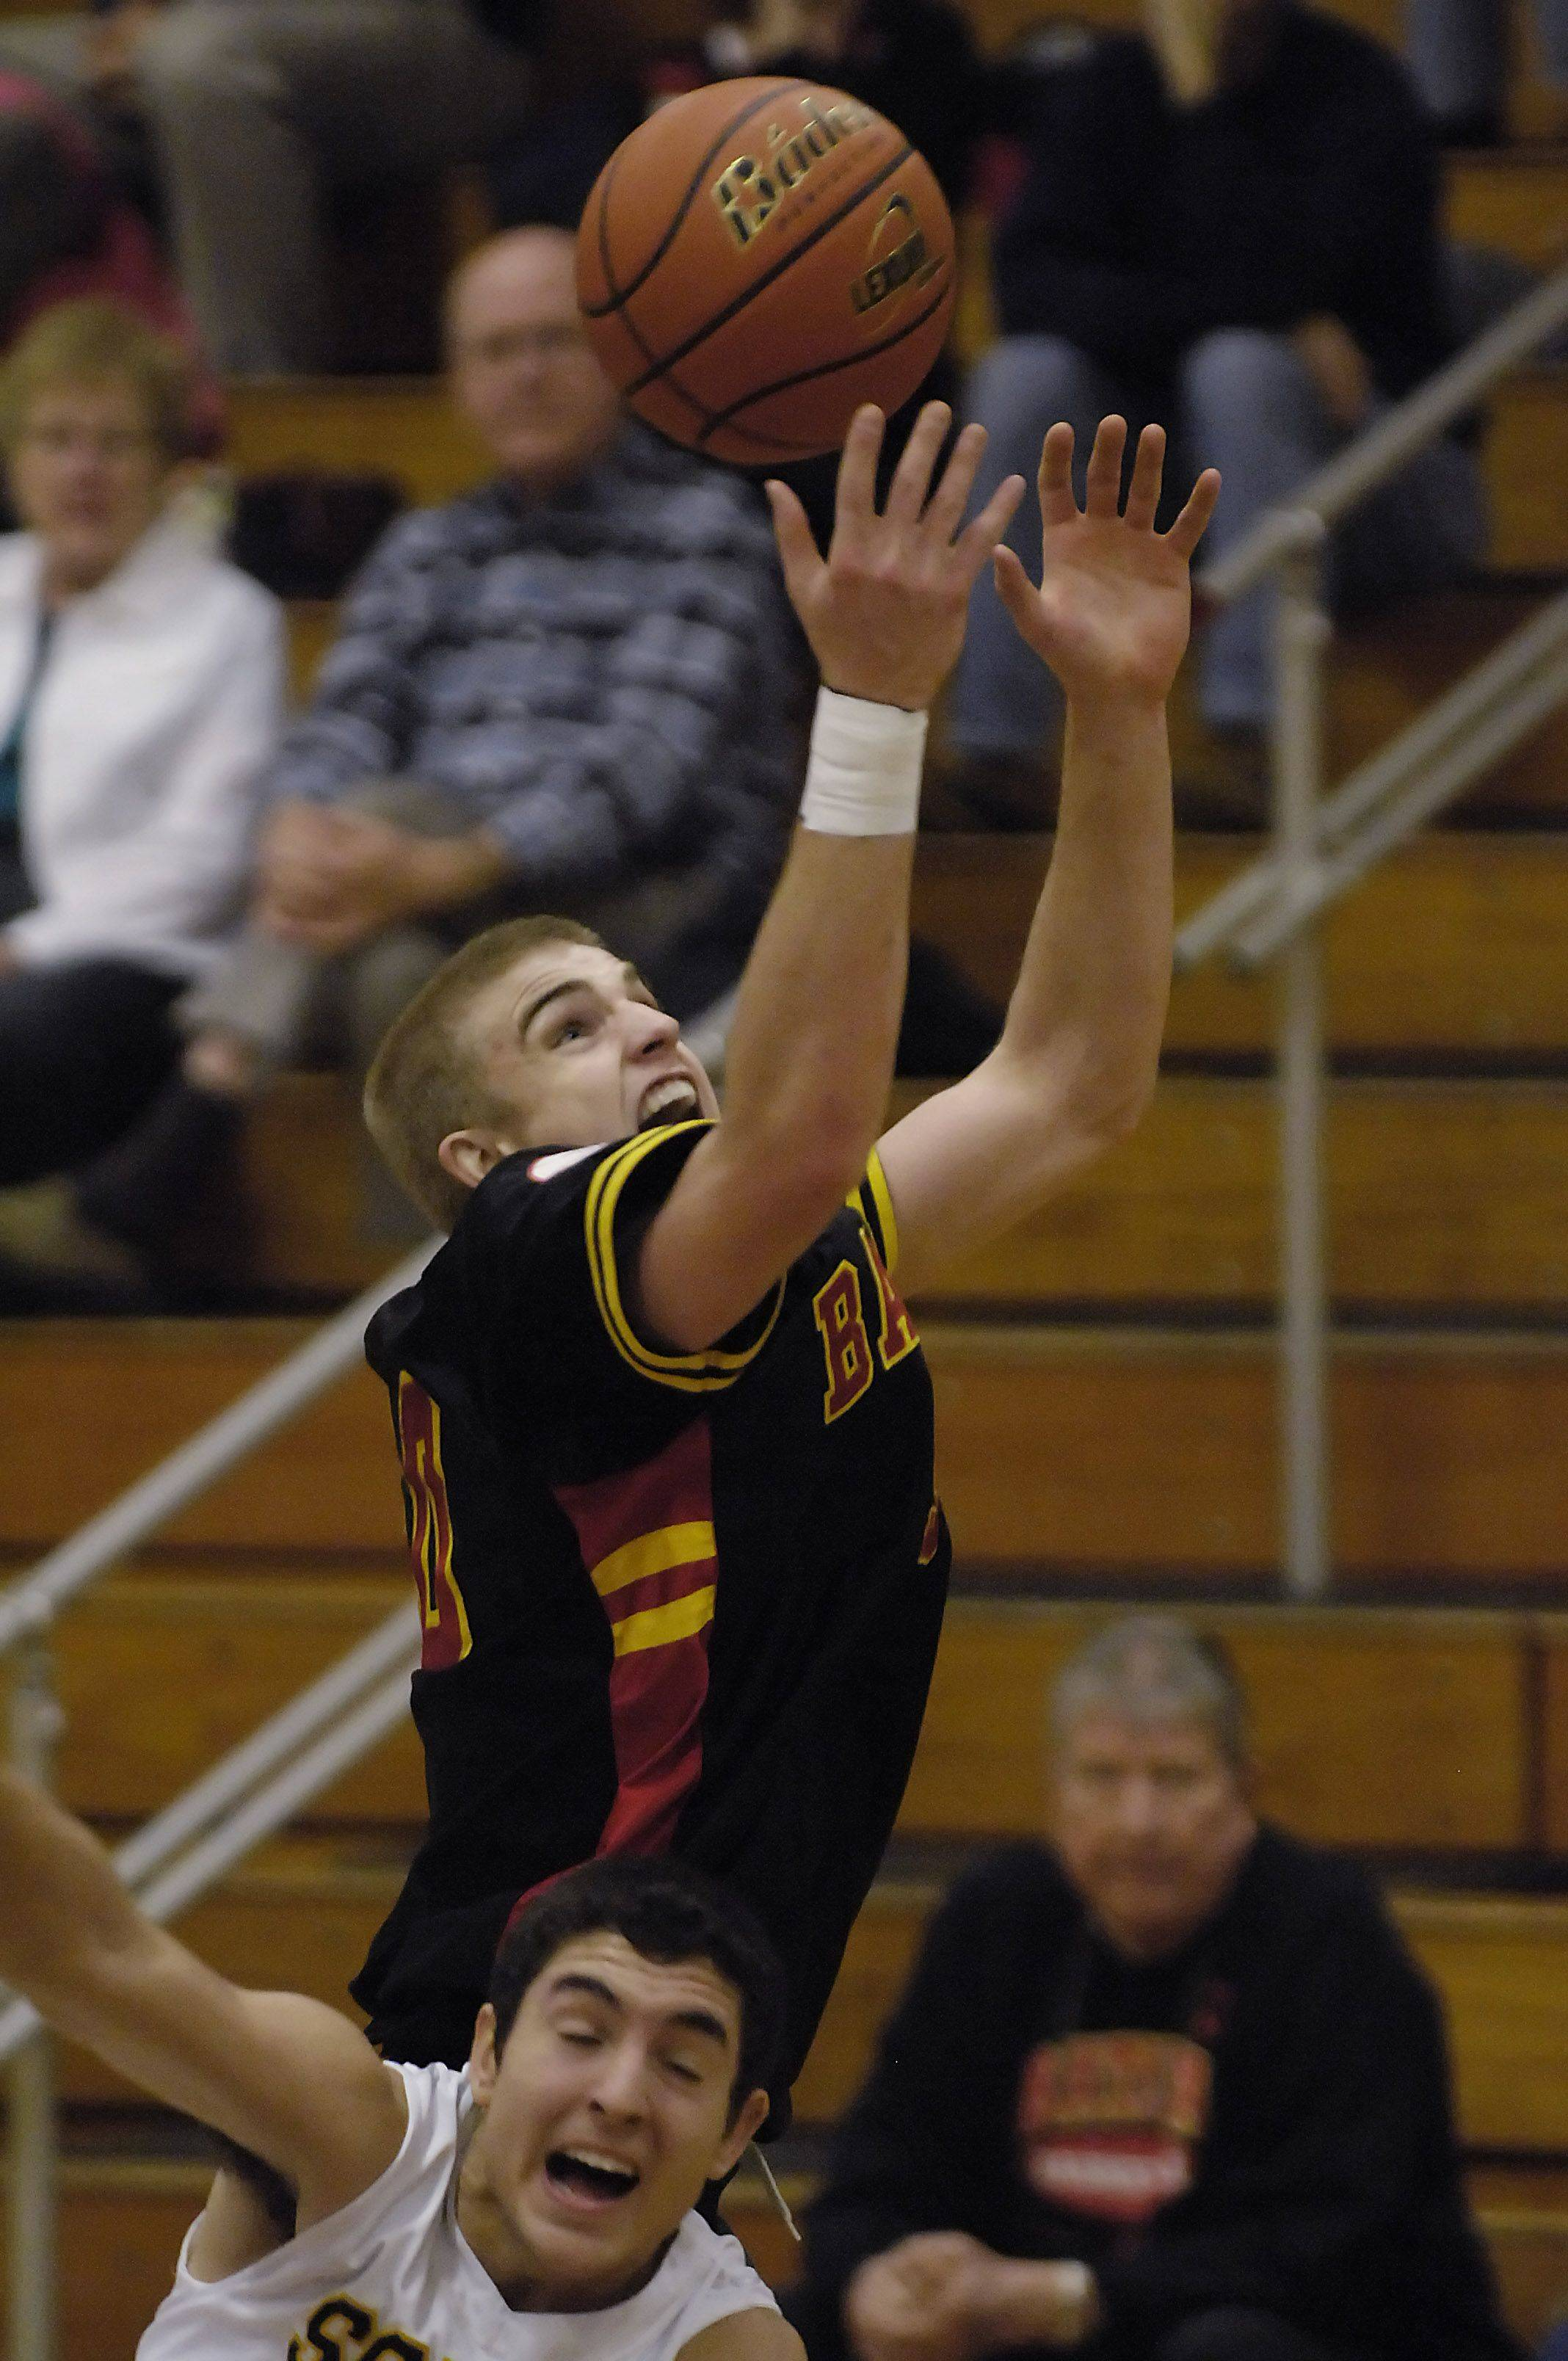 Batavia's Elliot Vaughn controls the air as he rebounds against Glenbrook South's Jessie Larabee in the consolation game of the Elgin holiday tournament Thursday.